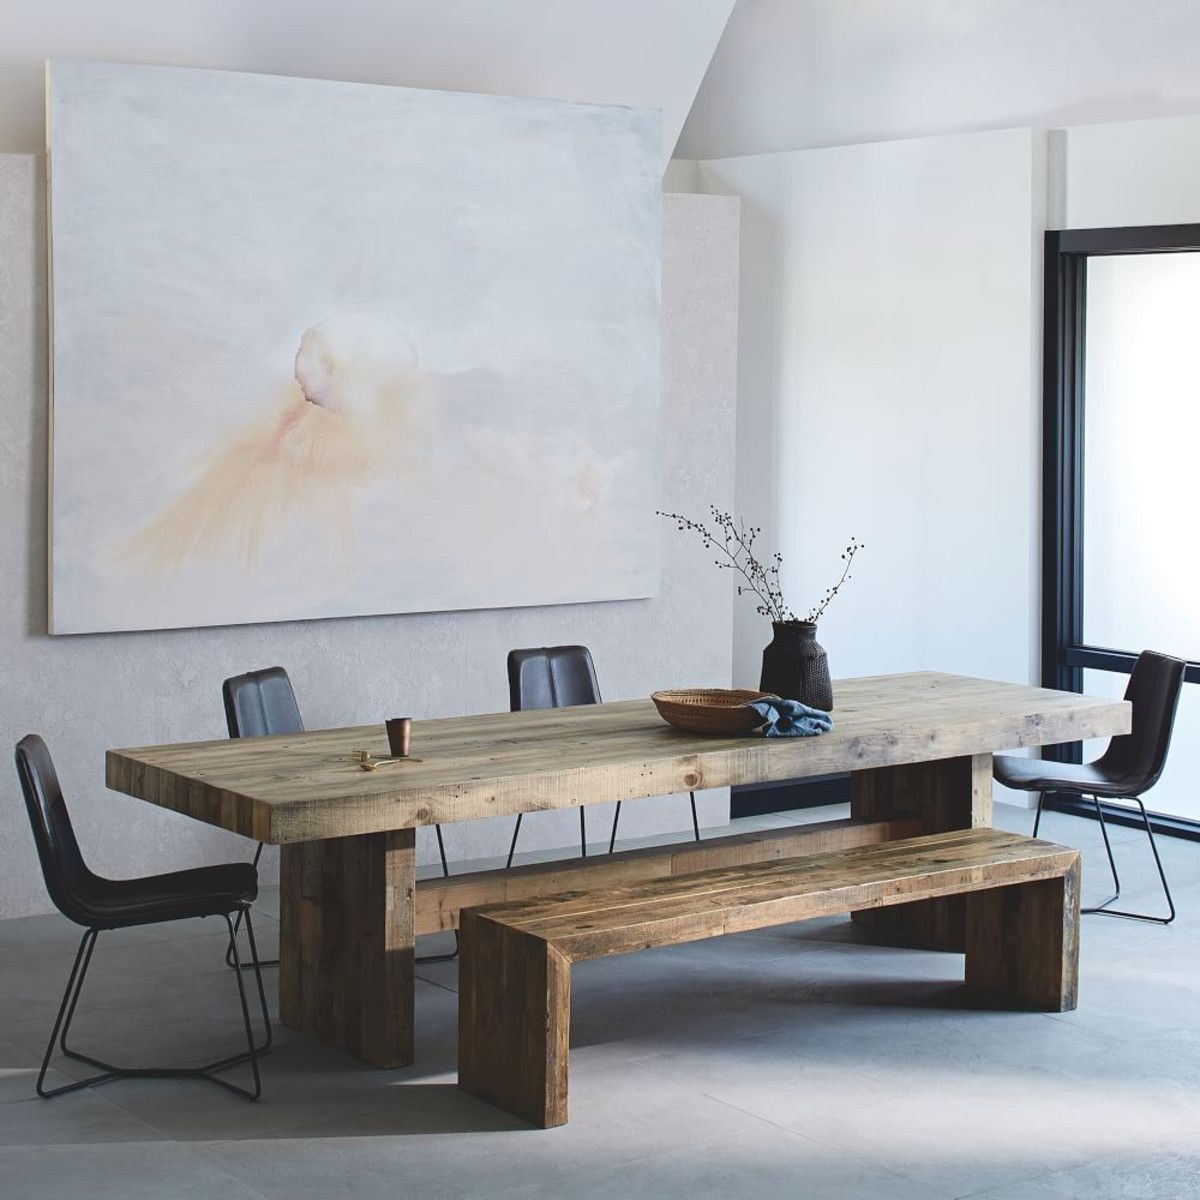 Emmerson Reclaimed Wood Dining Table Reclaimed Wood Dining